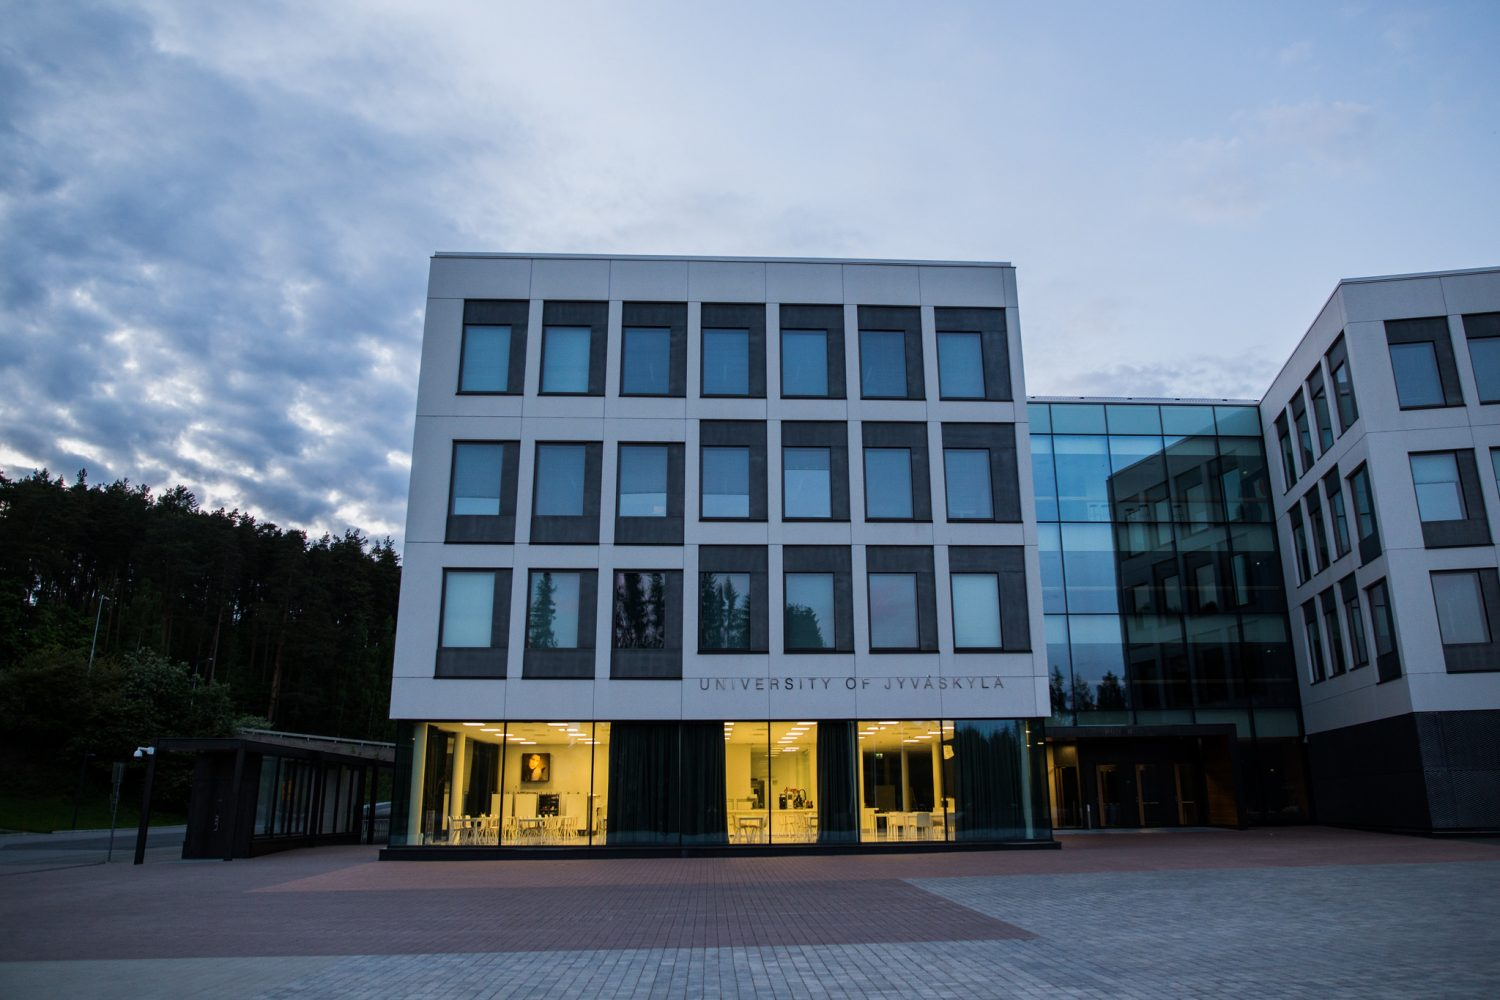 The University of Jyväskylä